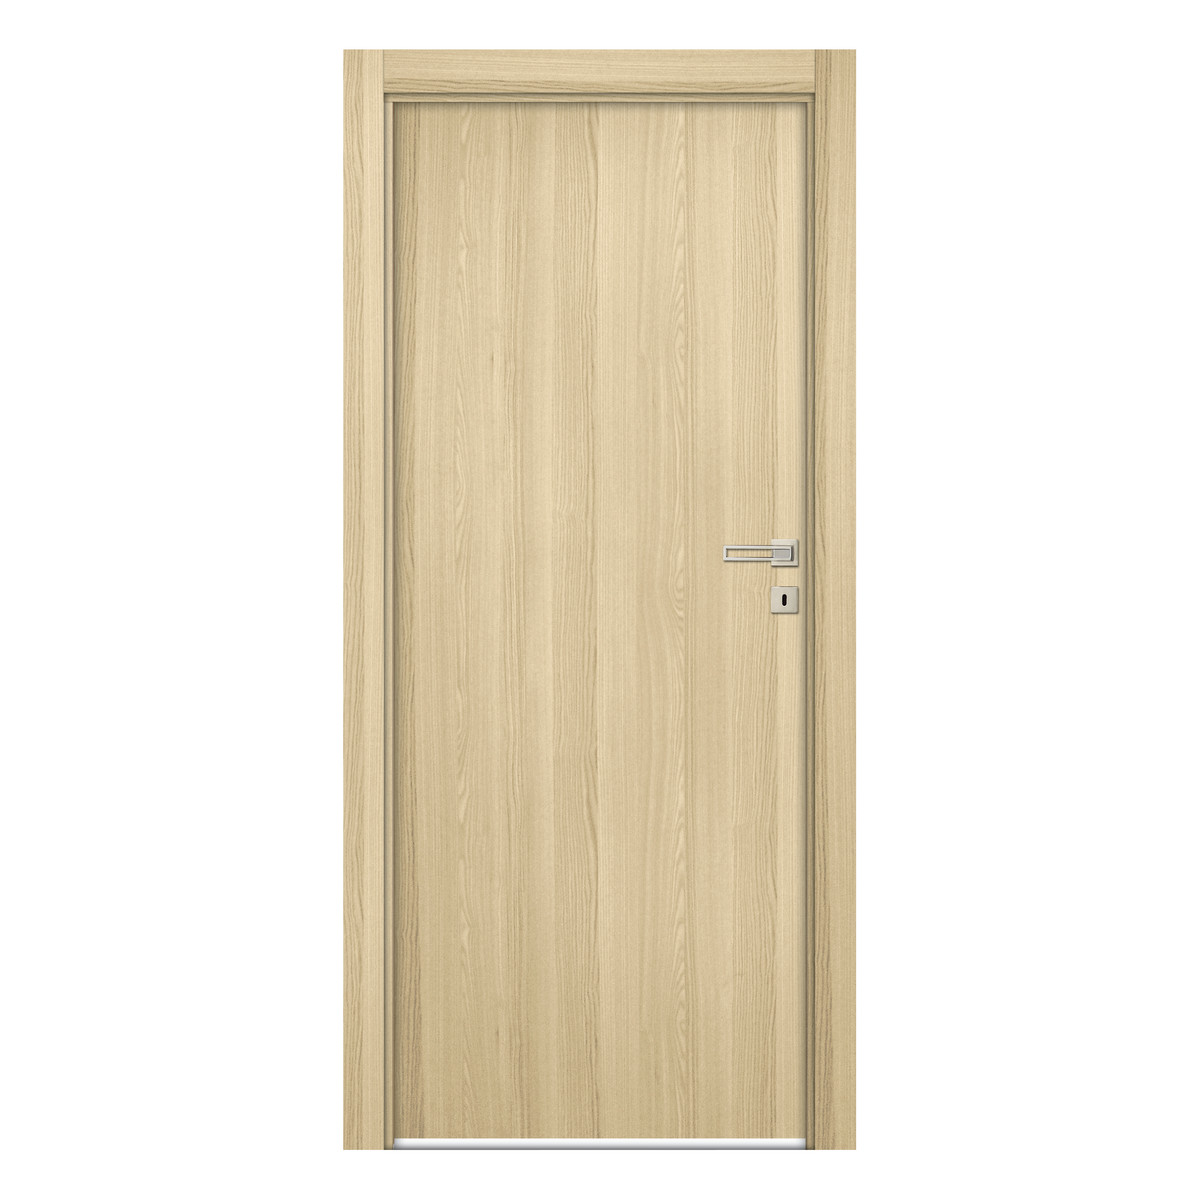 Porta da interno battente young rovere sbiancato 80 x h for Leroy merlin finestre